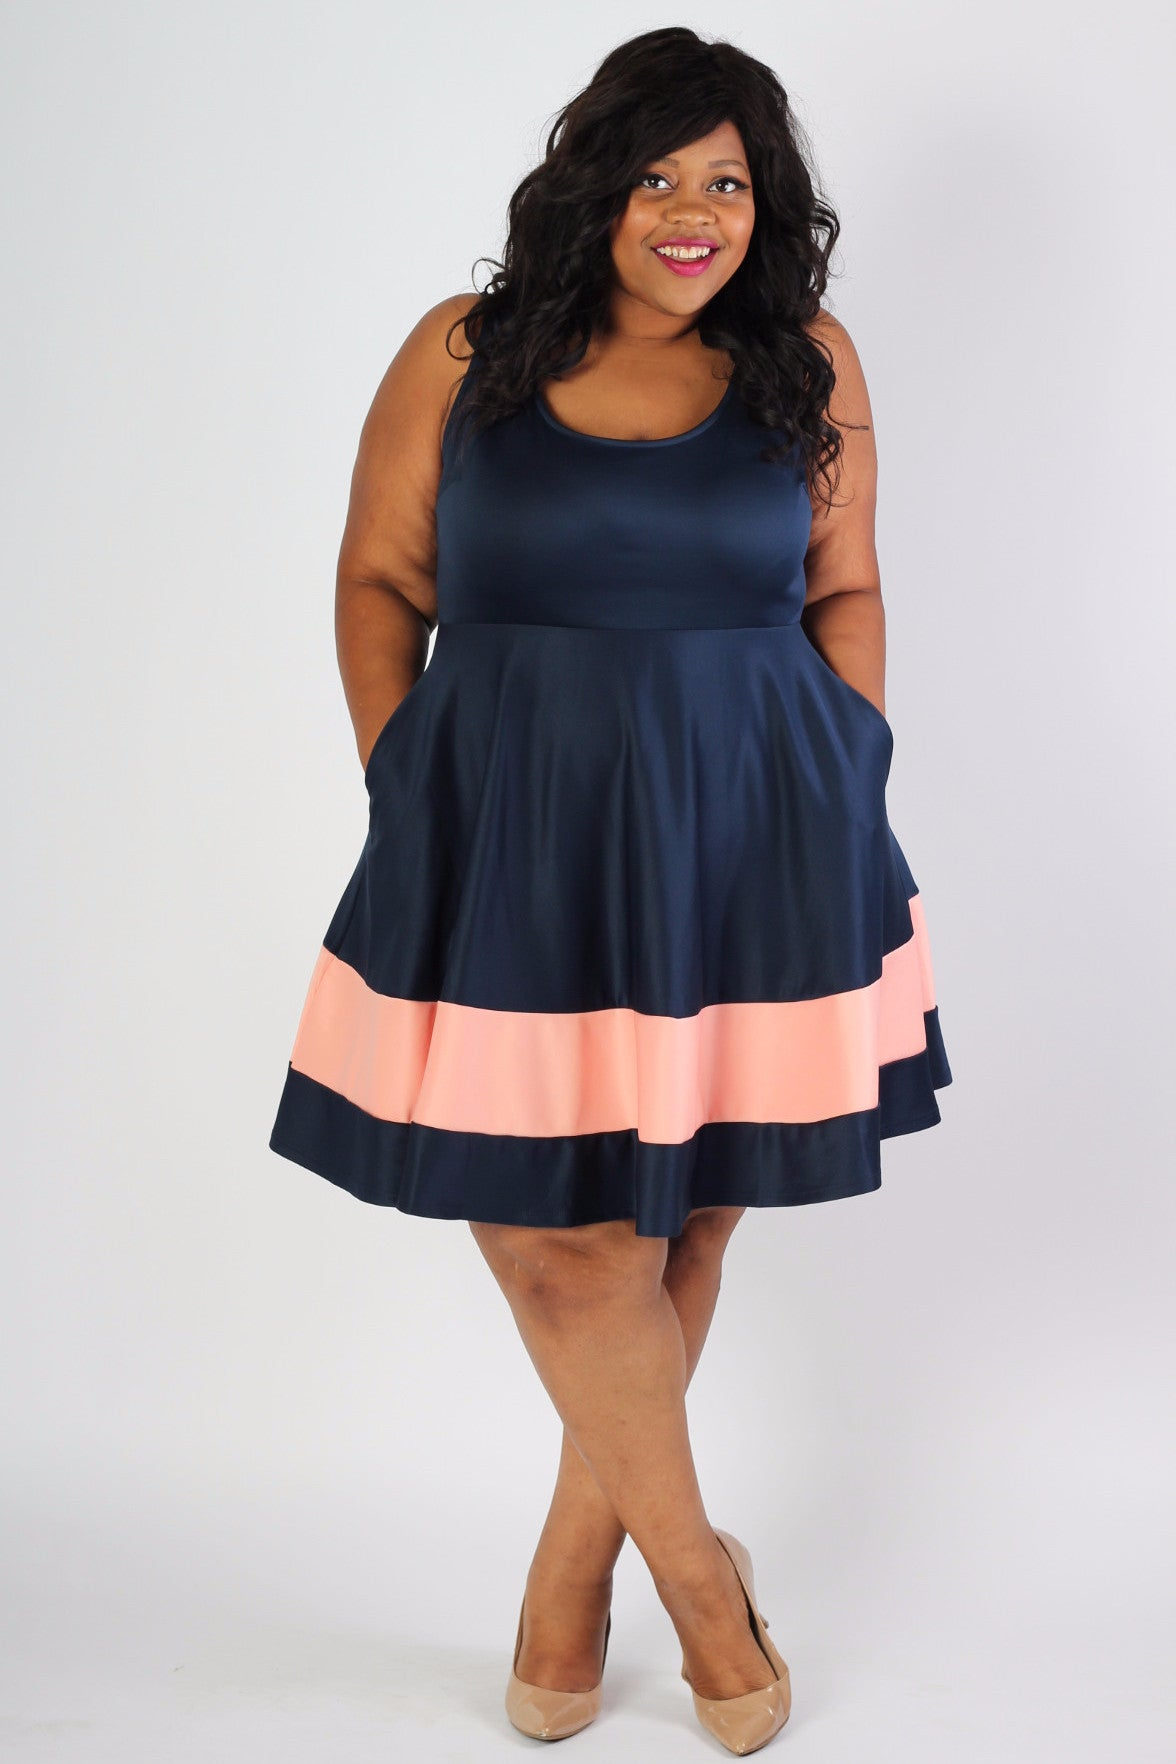 Classic Stripe Skater Dress - Navy